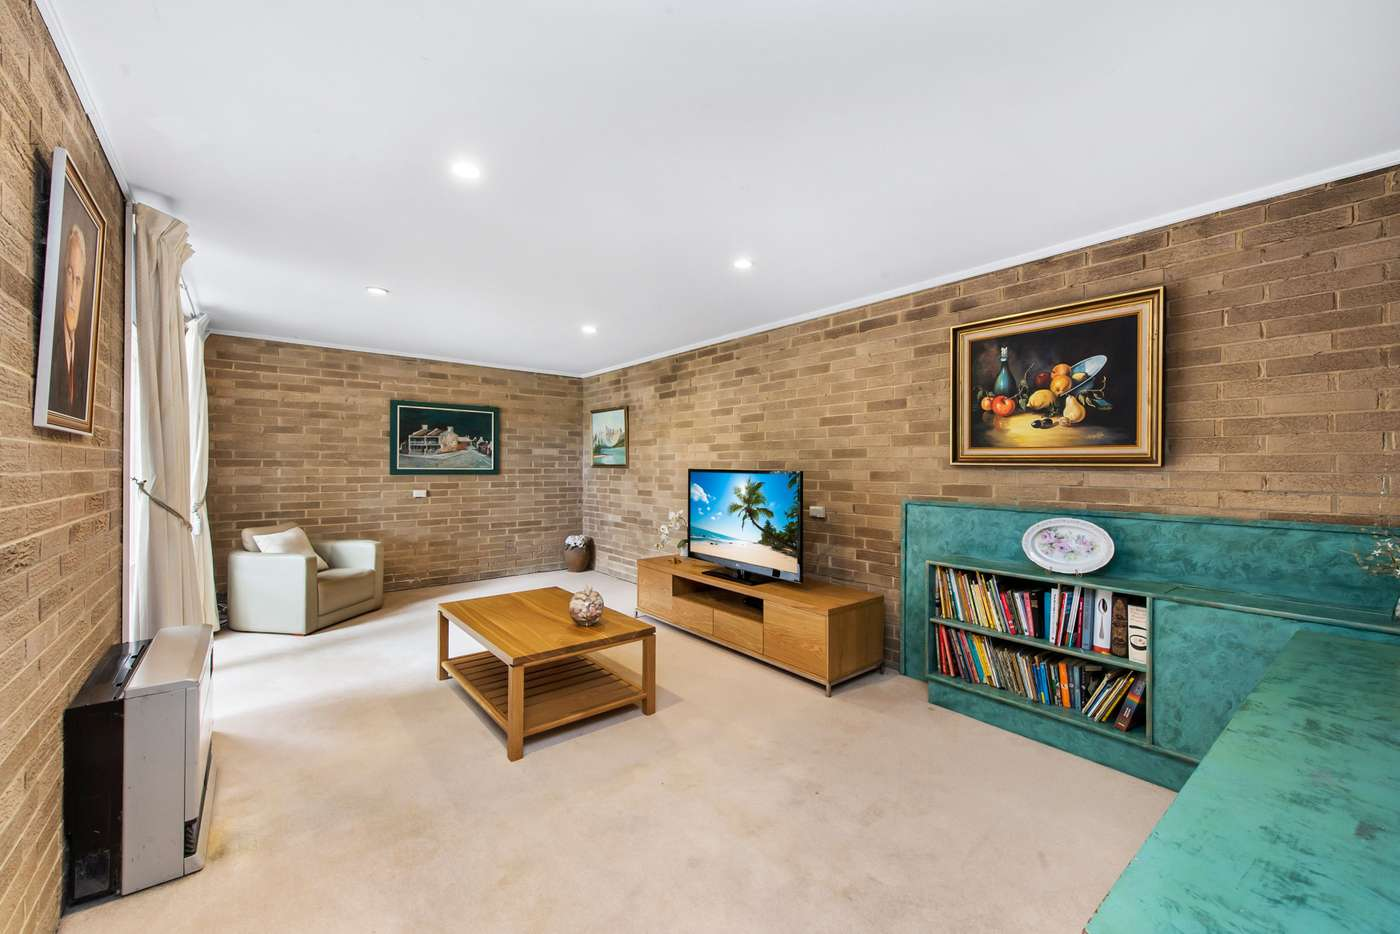 Seventh view of Homely house listing, 22 Riverside Avenue, Keilor VIC 3036